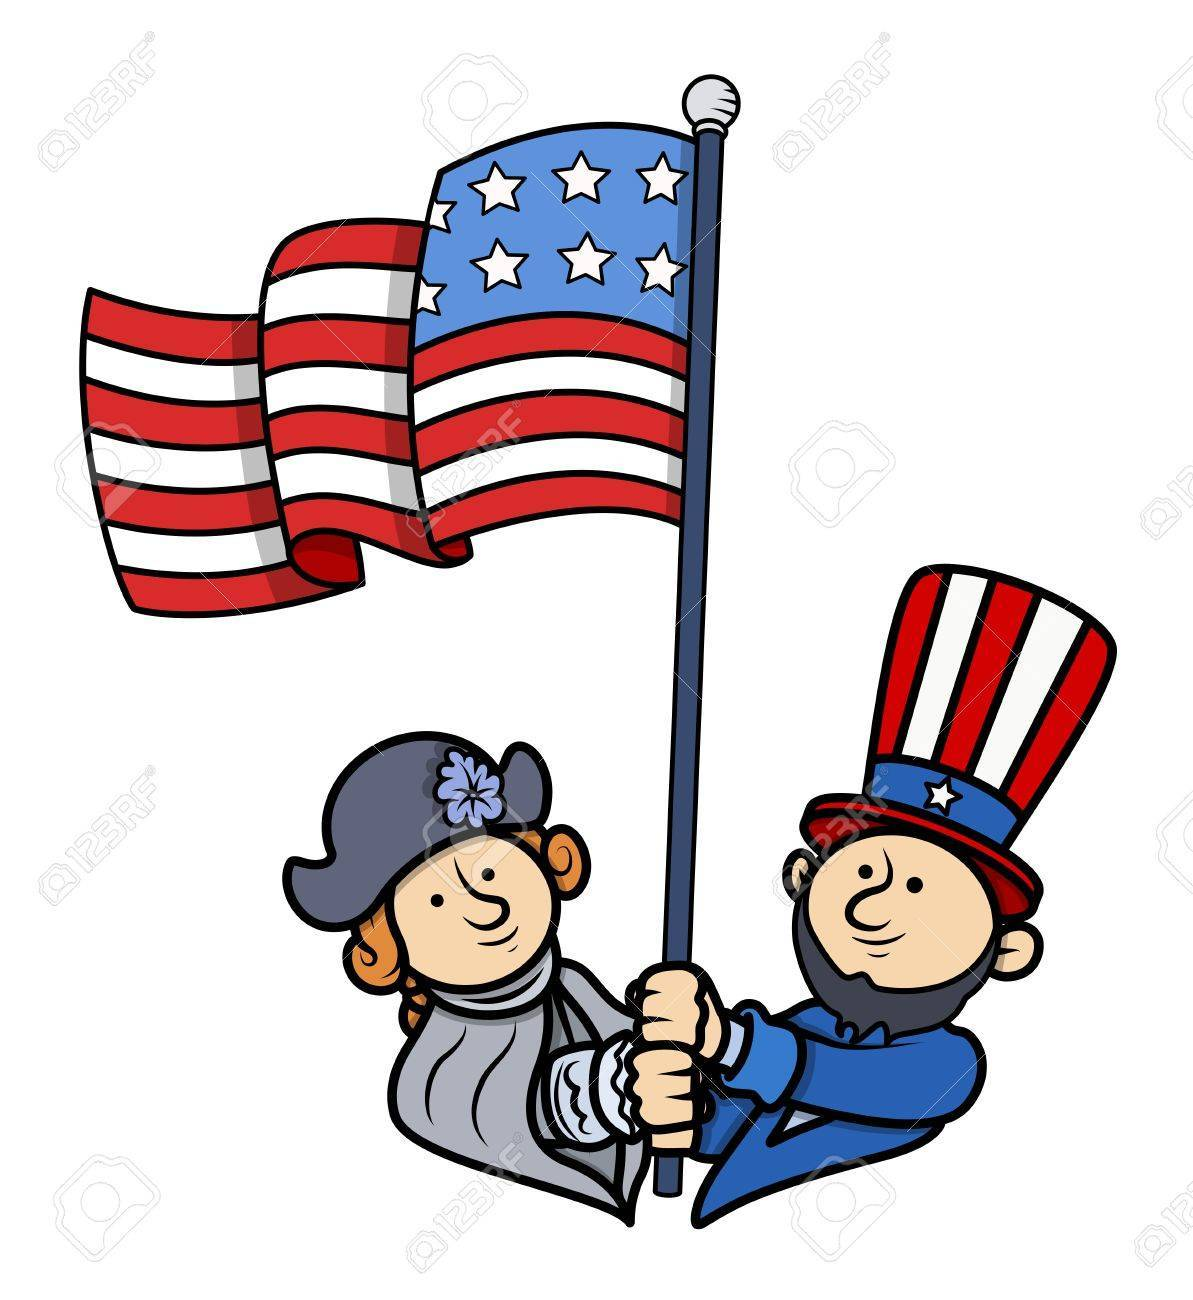 Us presidents clipart 5 » Clipart Portal.